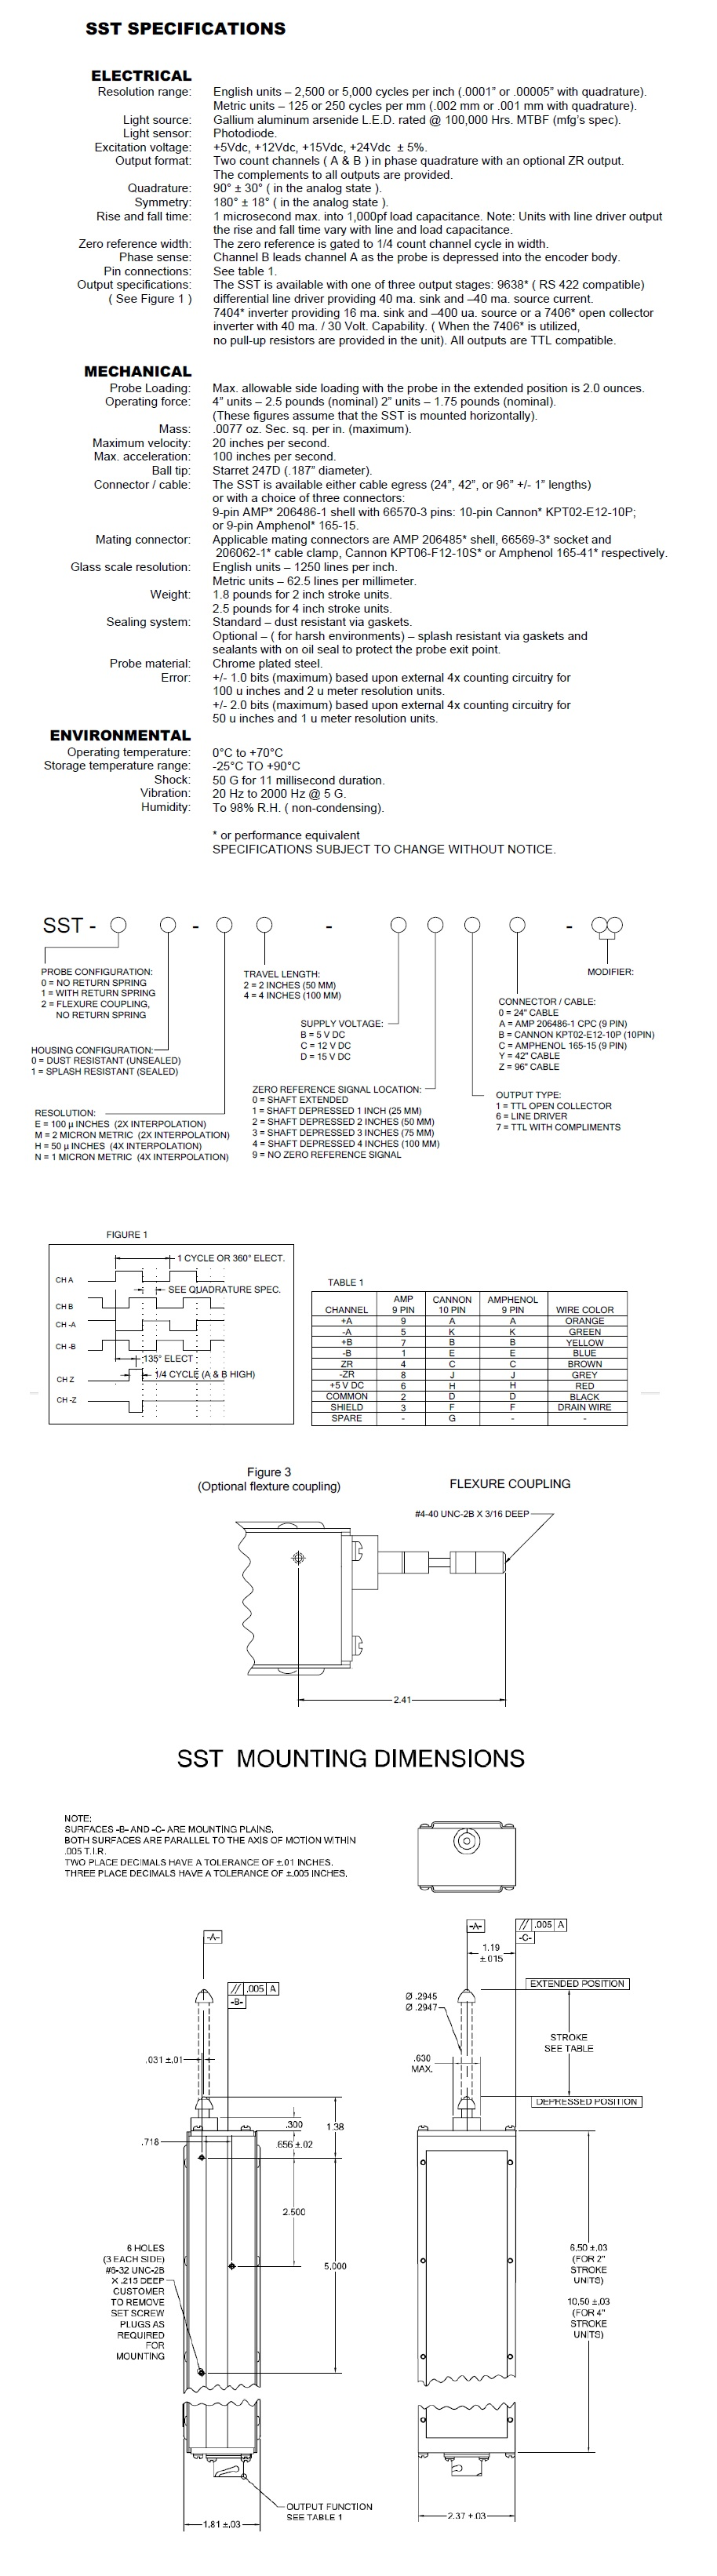 Microe Short Stroke Linear Encoder Sst Series Wiring Diagram Interfaced To Multiplication Circuits And Conventional Up Down Logic An Optional Zero Reference Output Can Be Specified At The Beginning Or End Of